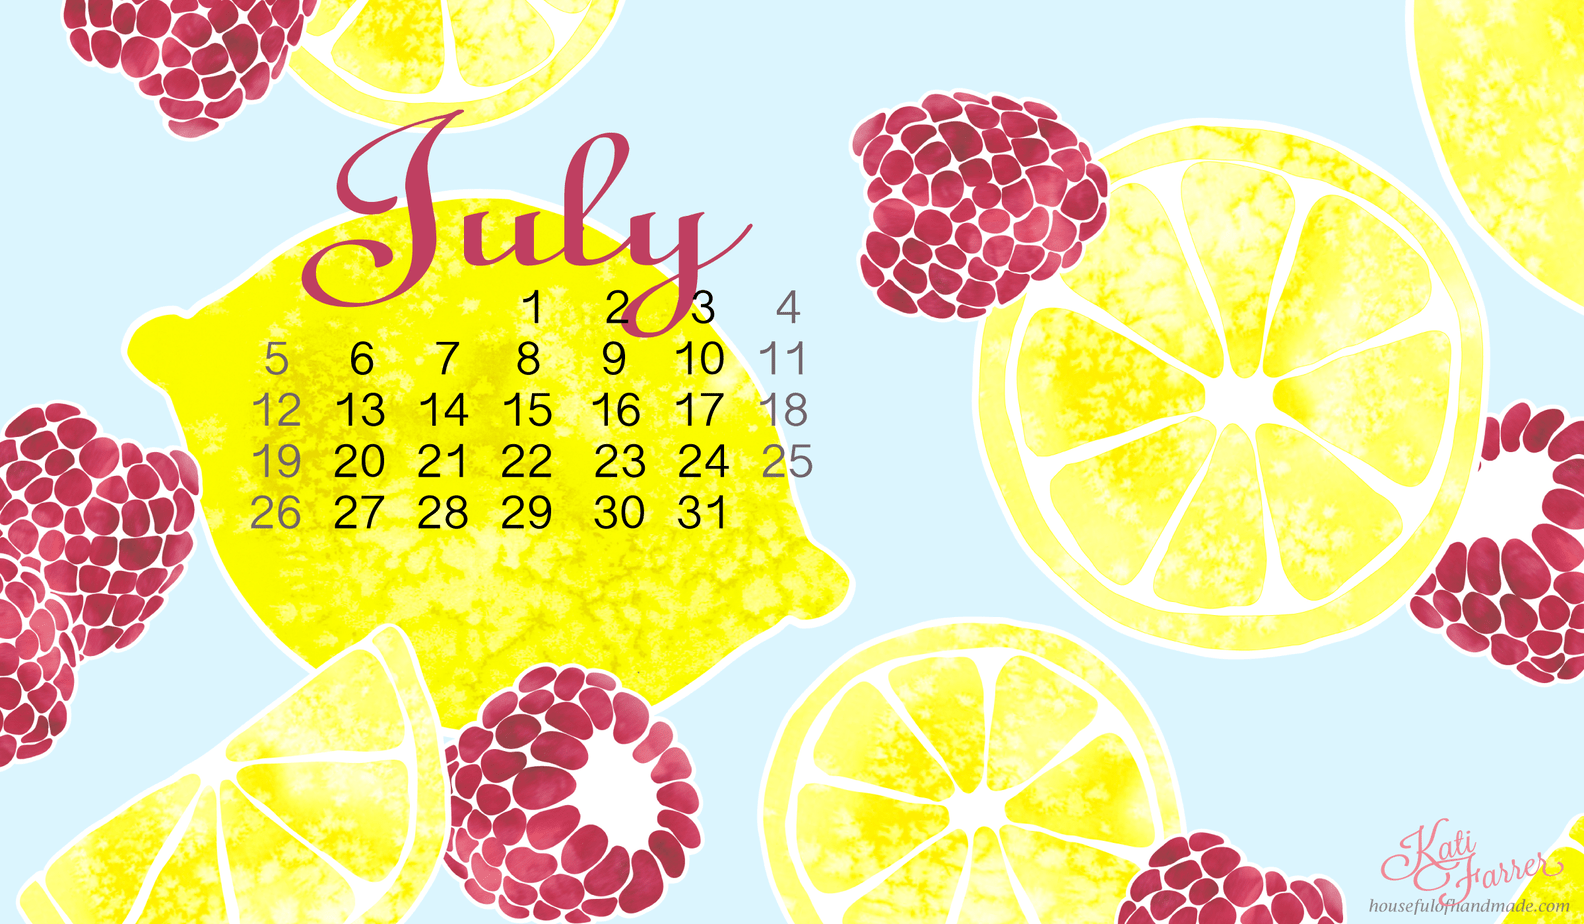 download free backgrounds for your smartphone and computer for july from houseful of handmade